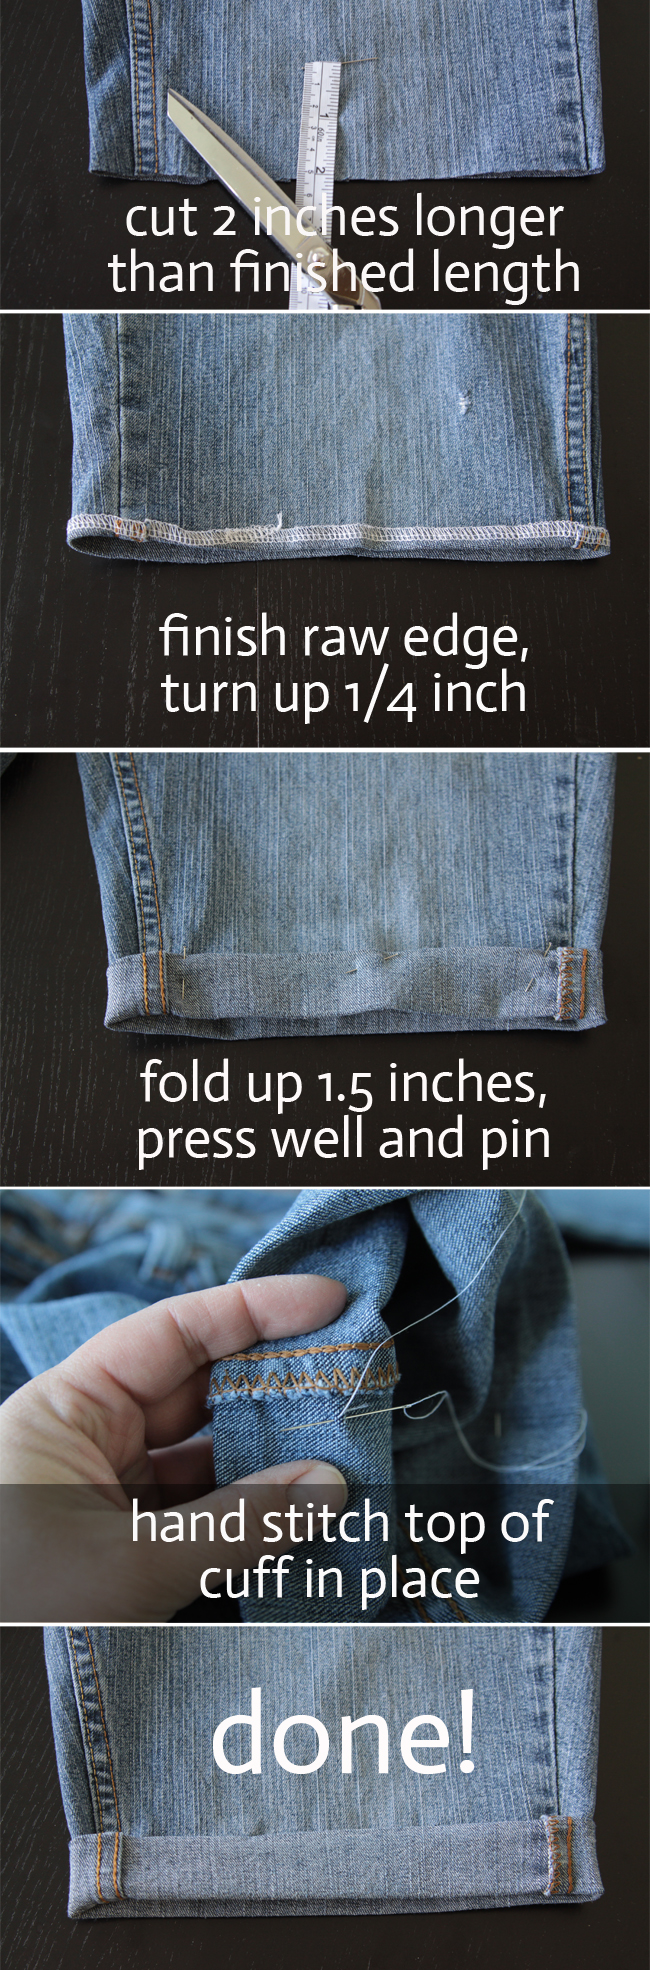 Instructions to hem jeans shorts cutoffs